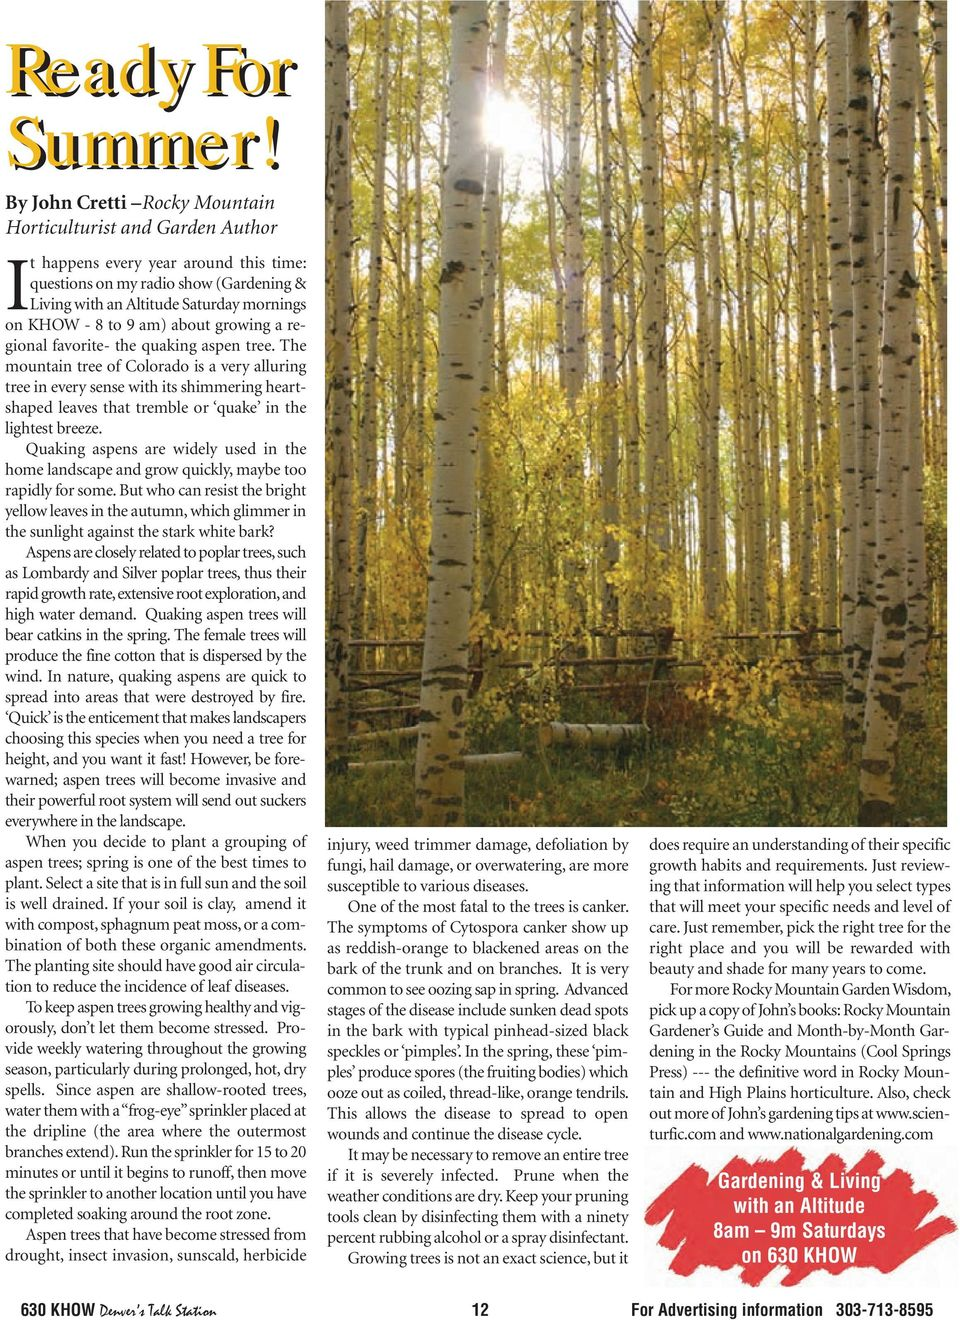 9 am) about growing a regional favorite- the quaking aspen tree.